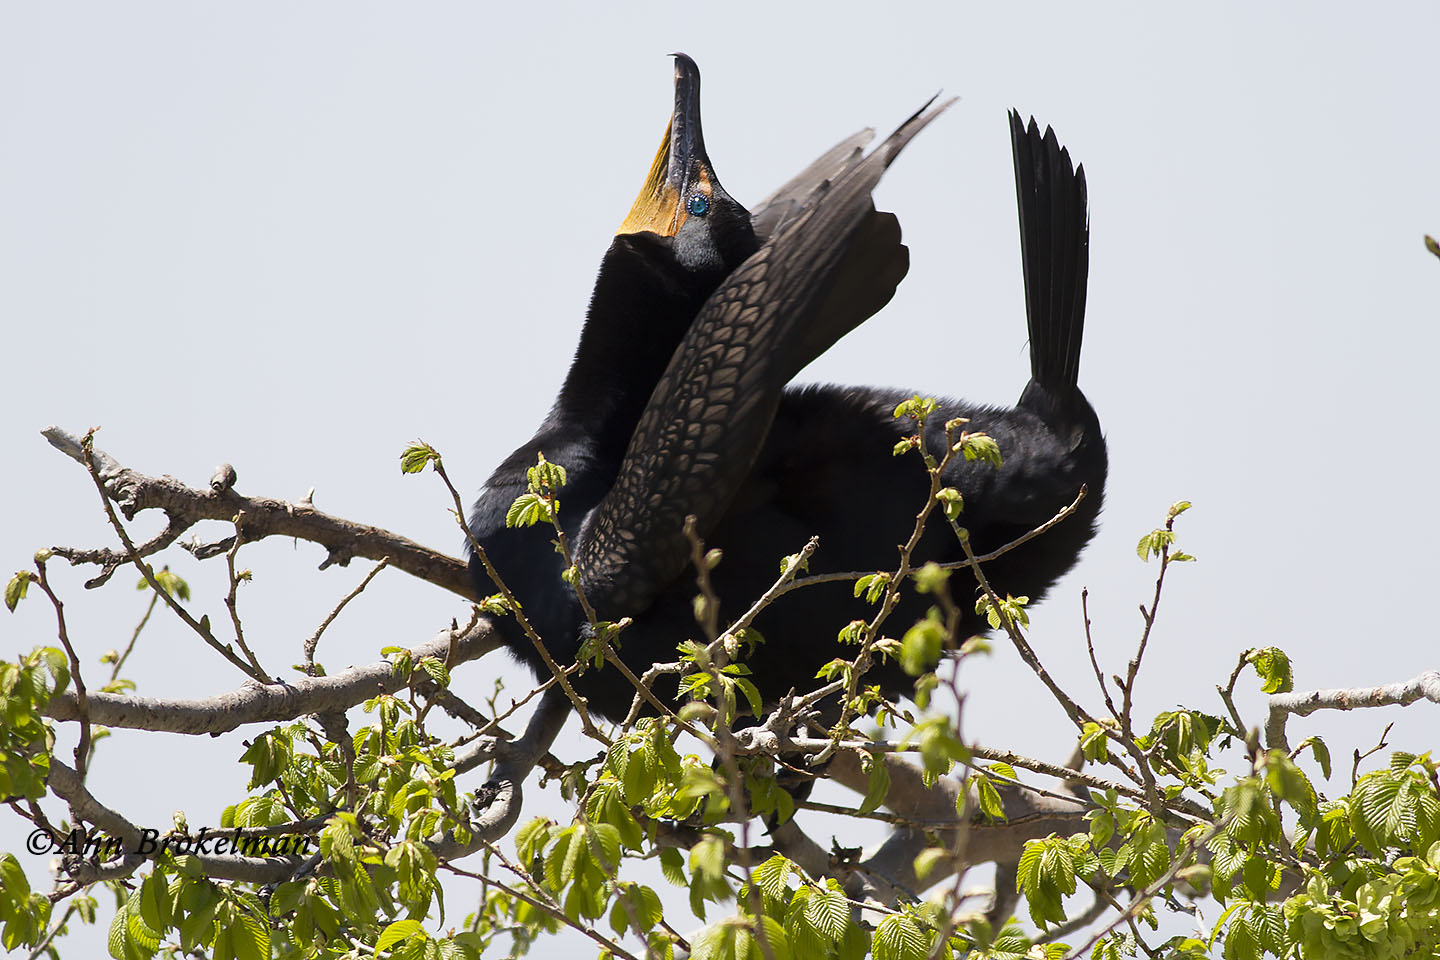 Double-crested Cormorant calling to mate